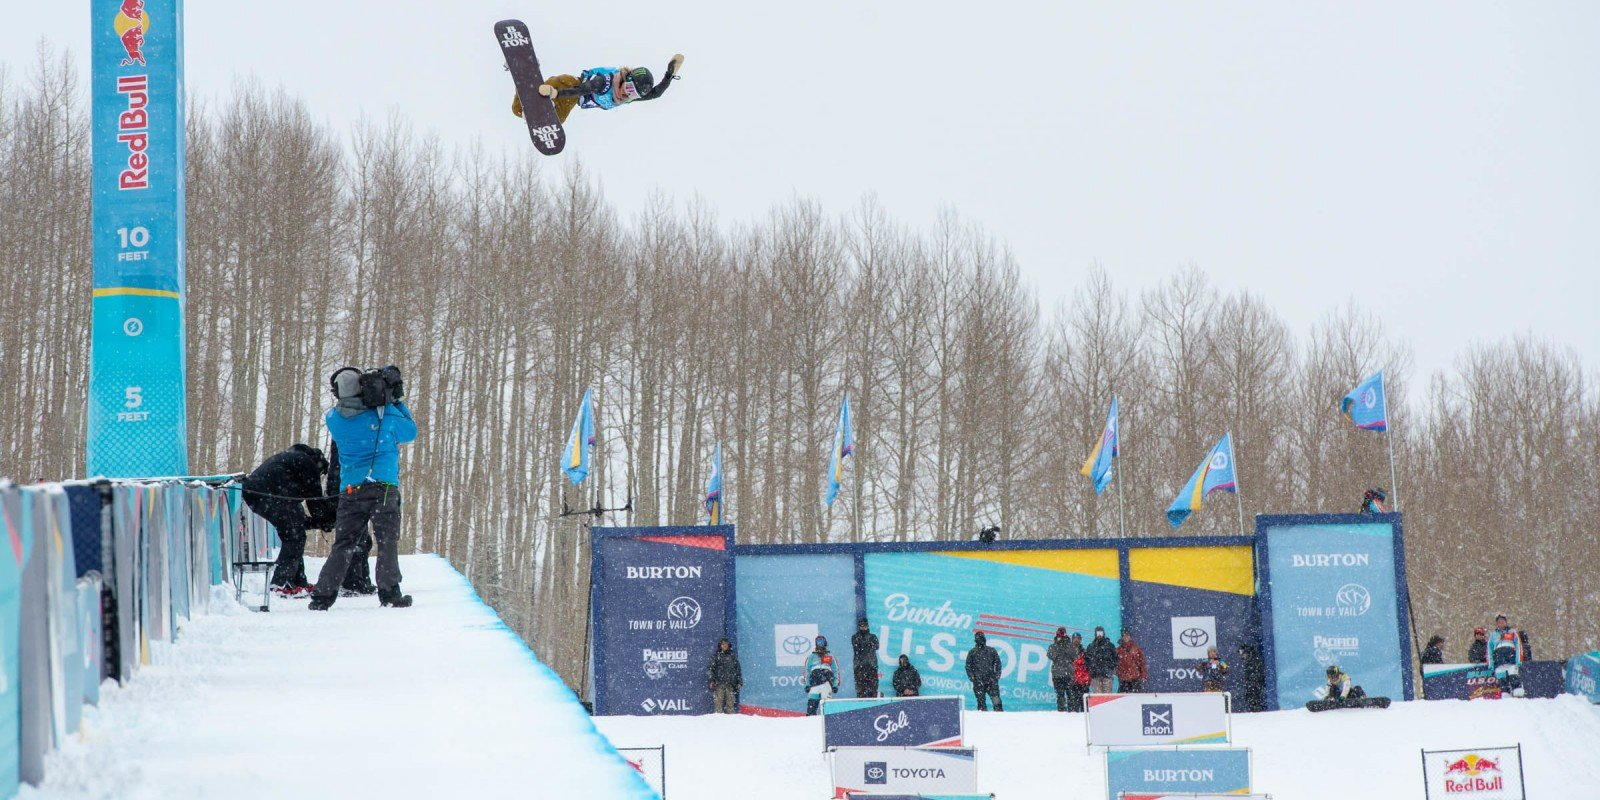 Image from the 2019 Burton Us Open